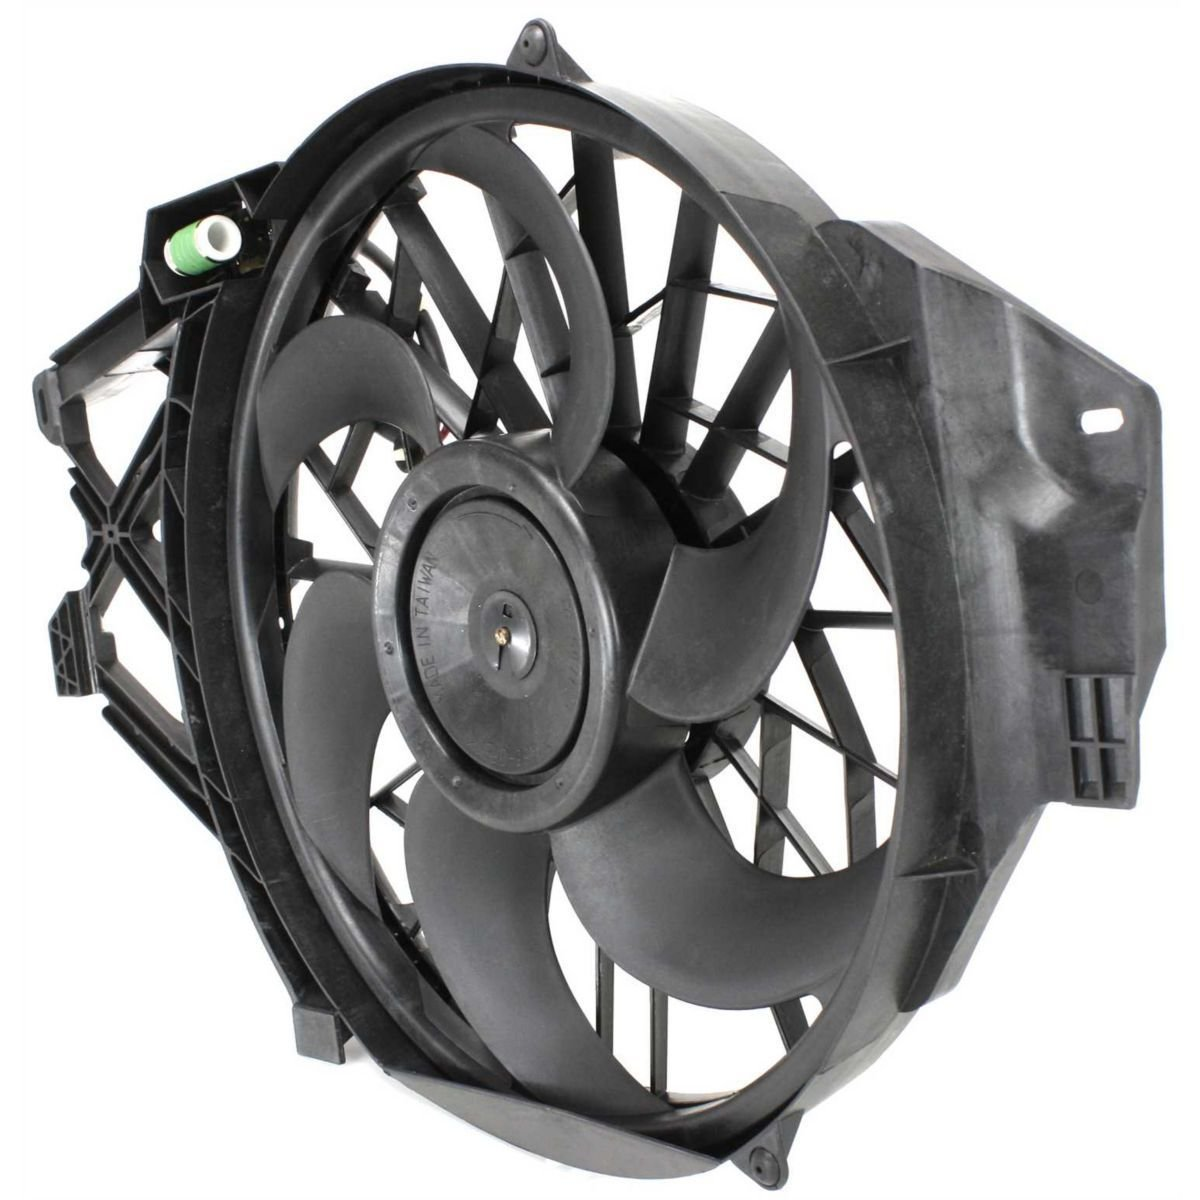 Diften 325-A1386-X01 - New Radiator Fan Cooling Ford Mustang 2004 2003 2002 2001 FO3115120 3R3Z8C607AA